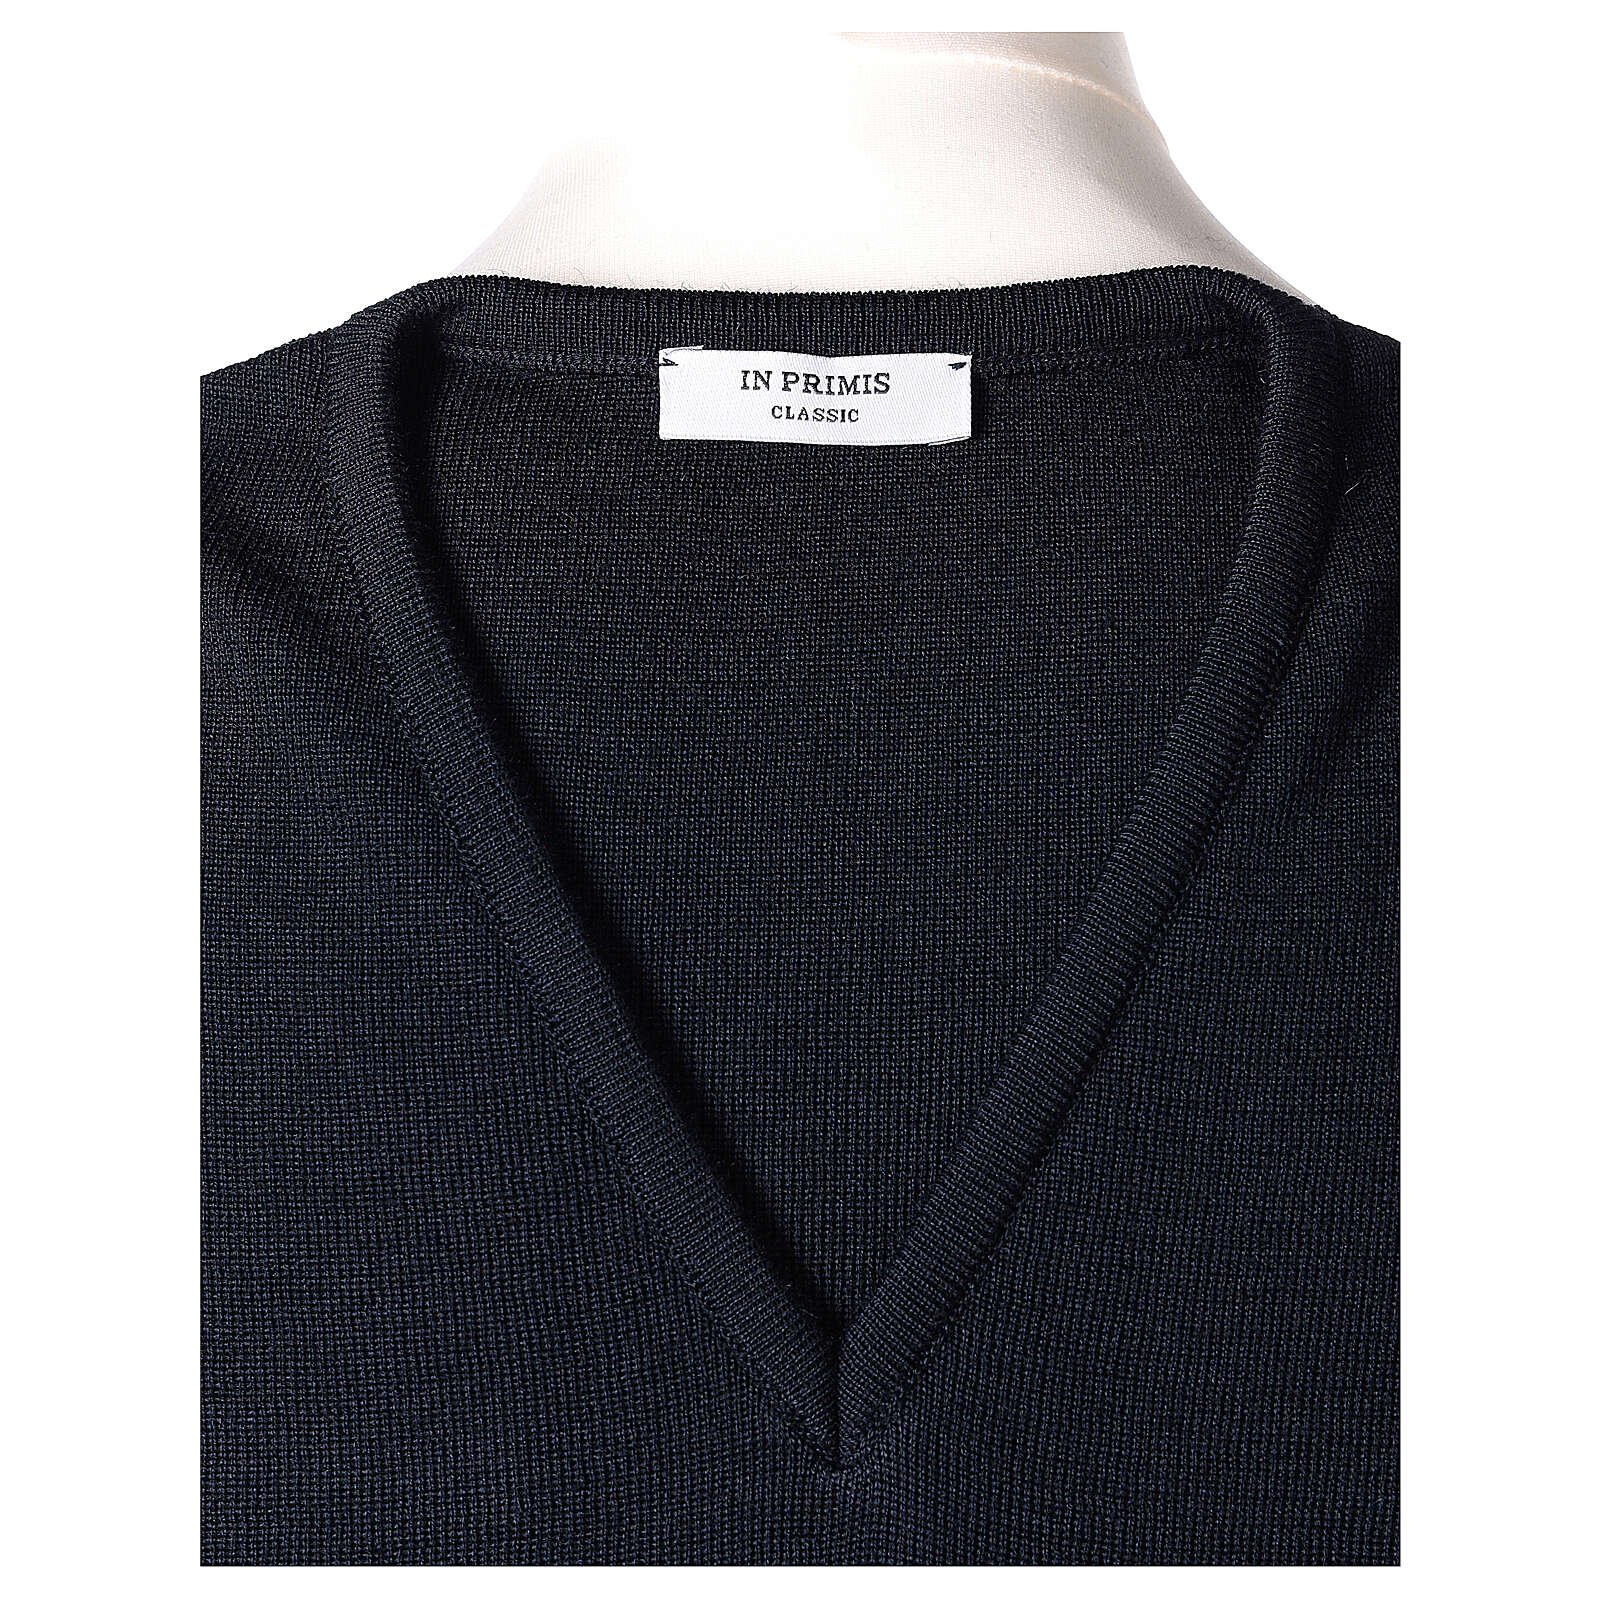 Clergy blue sleeveless jumper plain knit 50% merino wool 50% acrylic PLUS SIZES In Primis 4